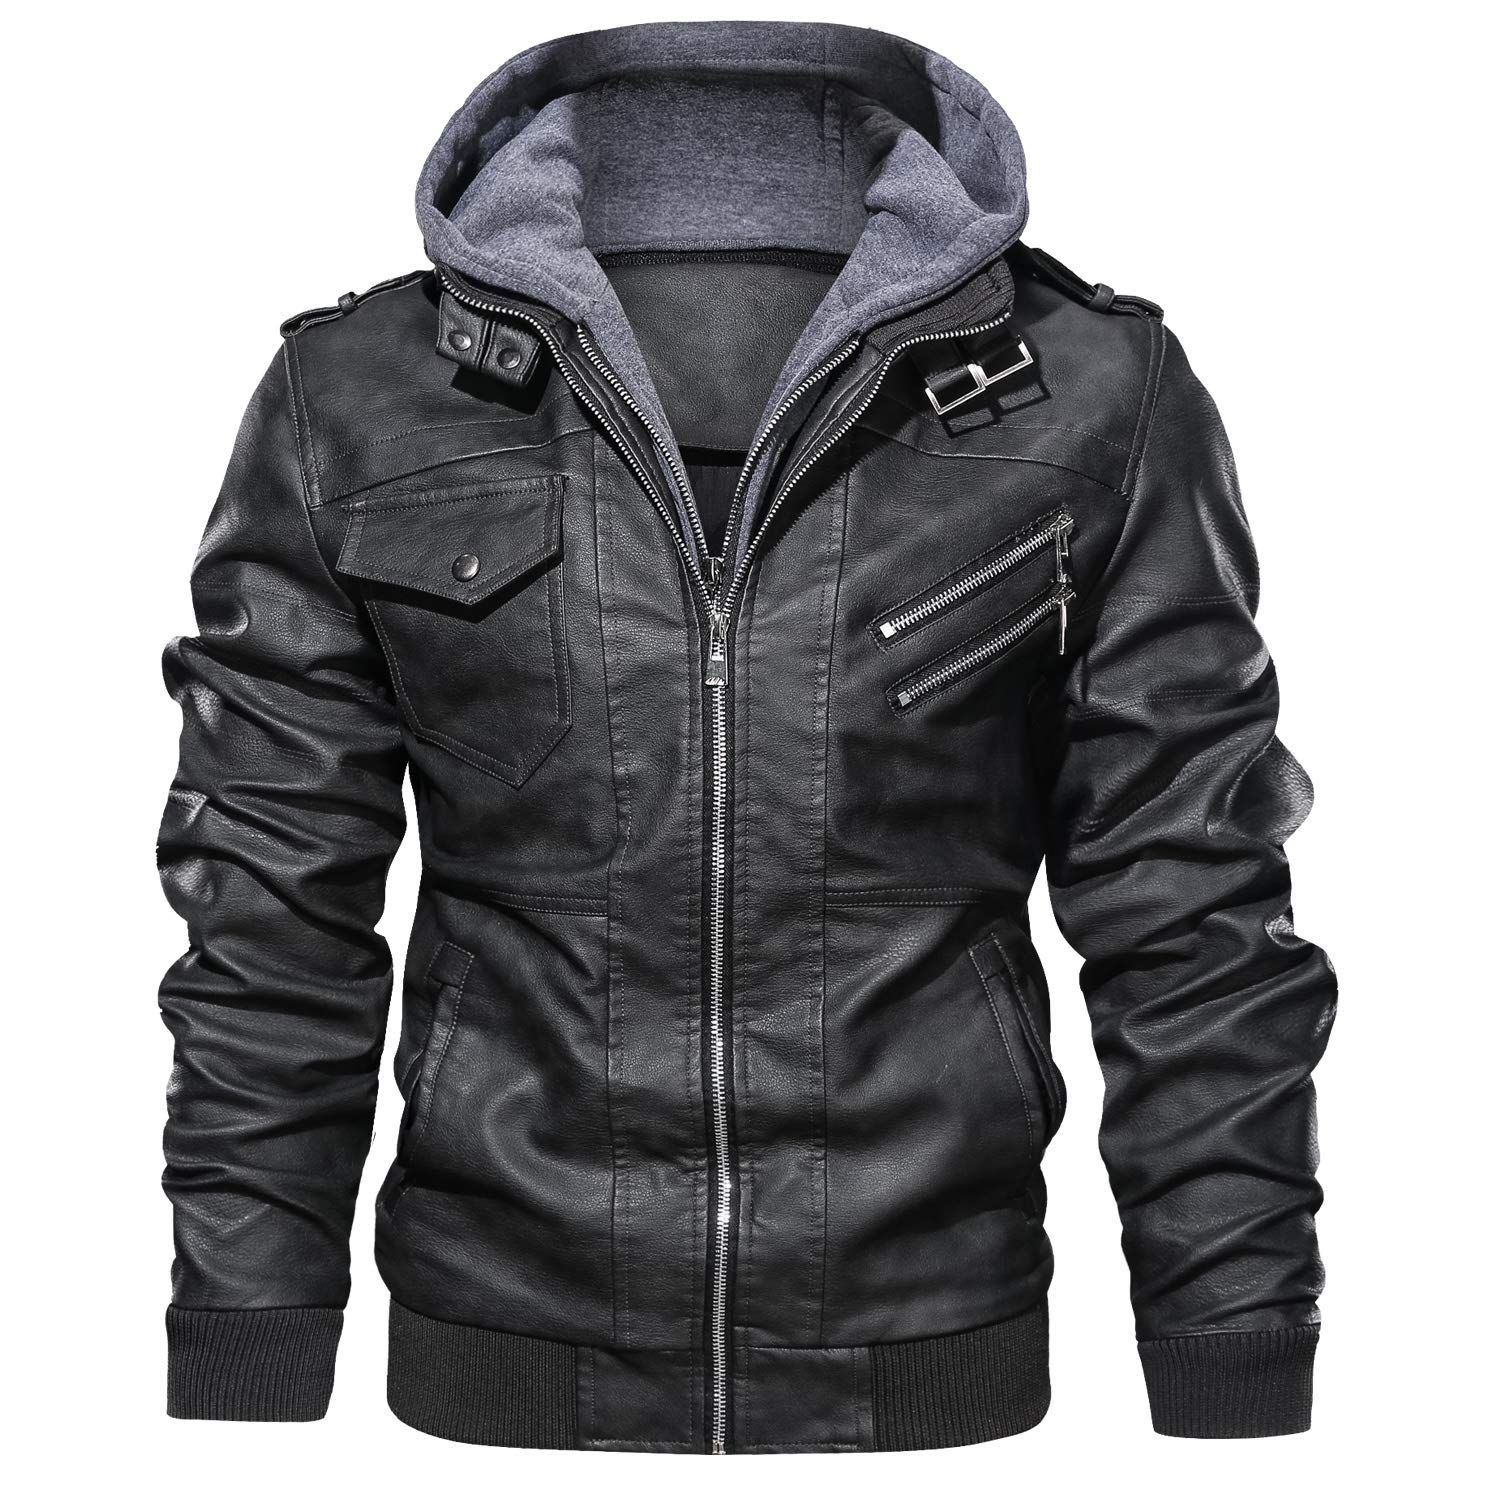 JYG Men's Faux Leather Motorcycle Jacket with Removable Hood Black by JYG